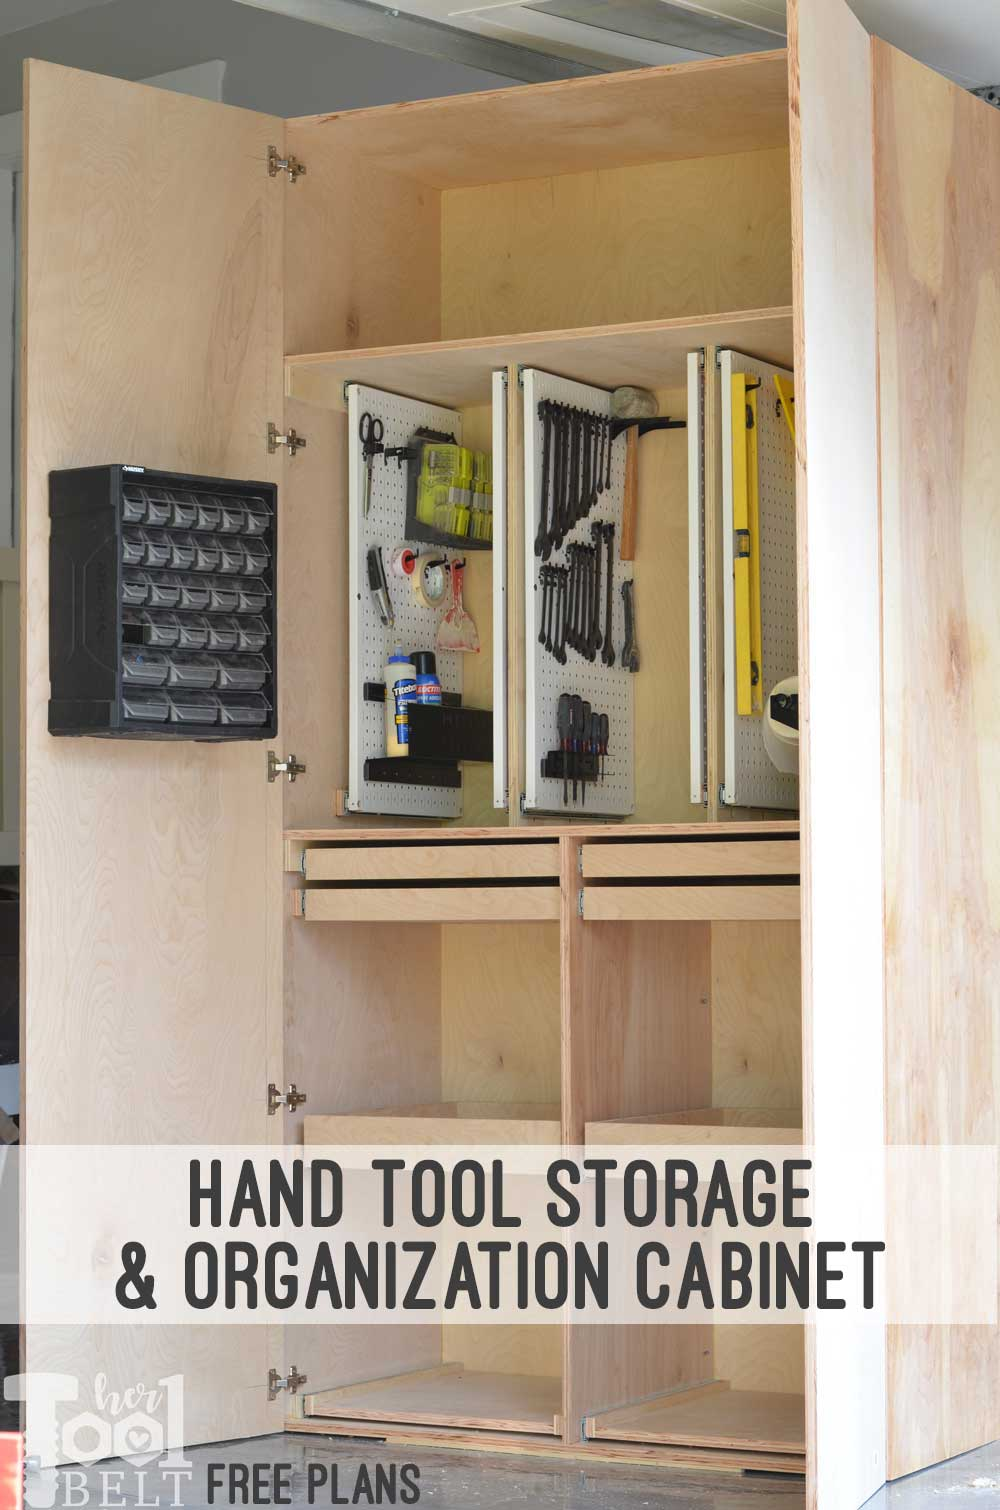 Build A Garage Cabinet With Tons Of Storage E For Your Tools Supplies And